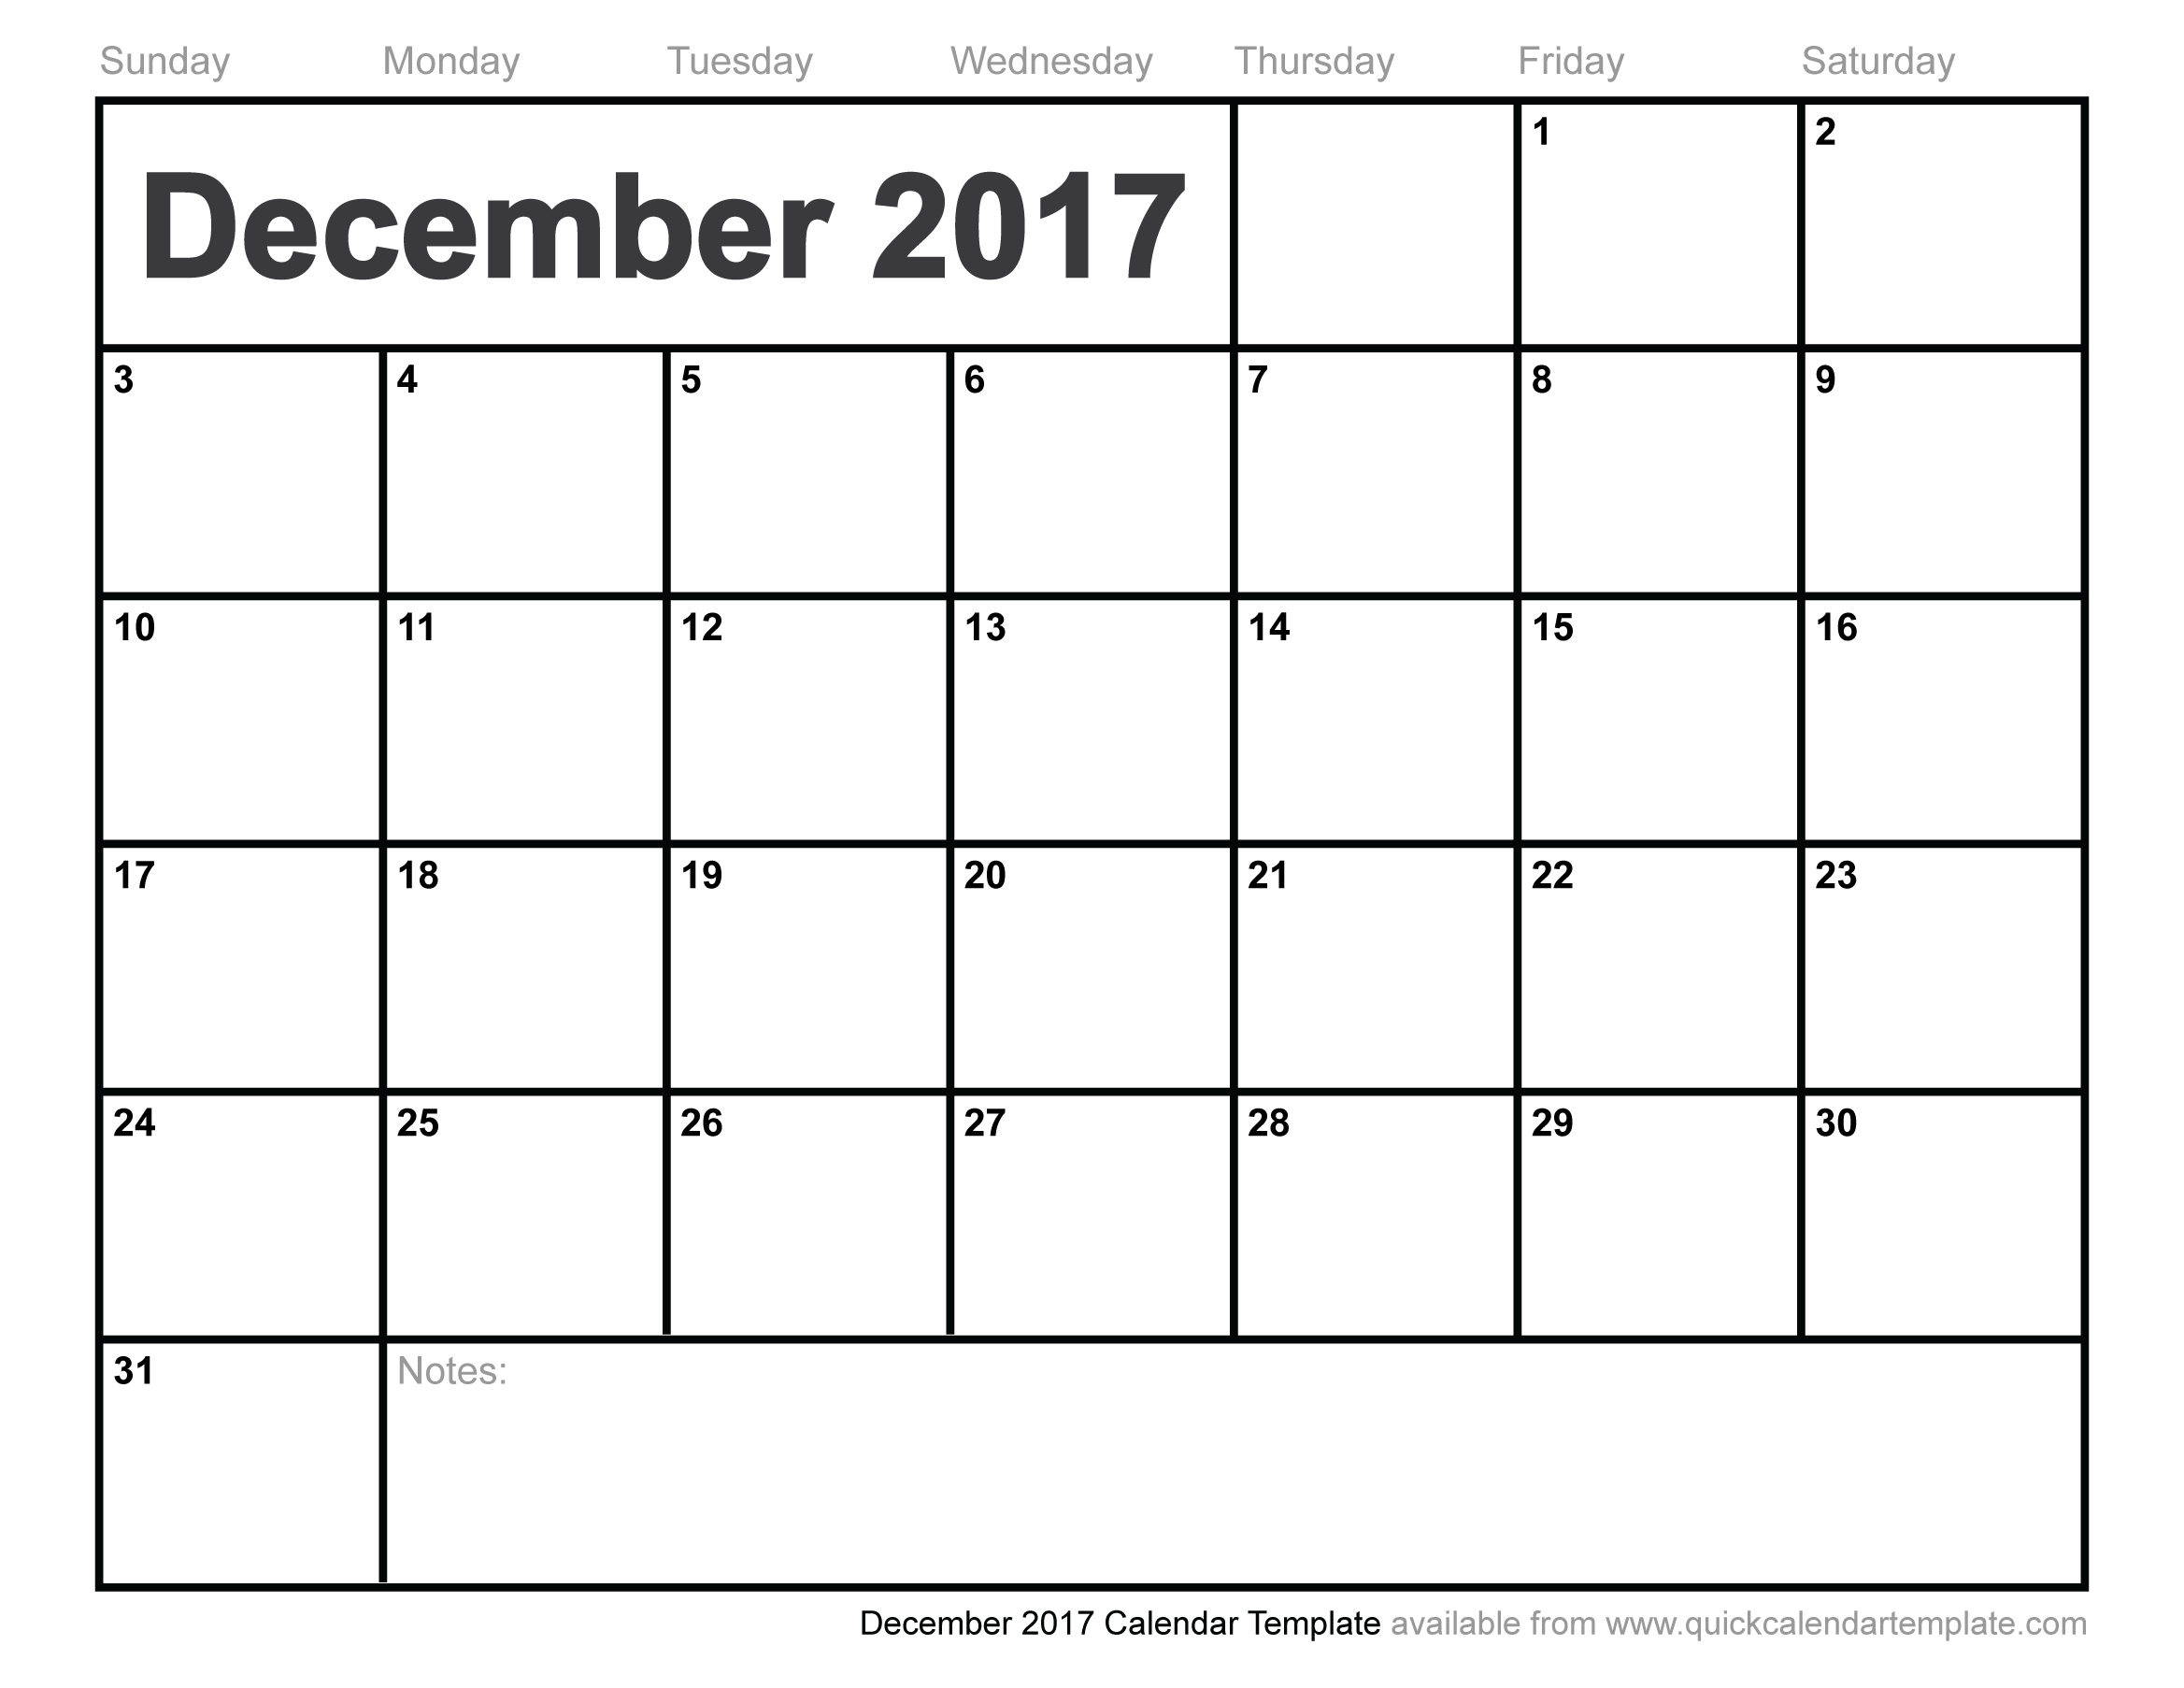 December 2017 Printable Calendar | Printable Calendar Yearly for Blank September October November Calendar Yahoo